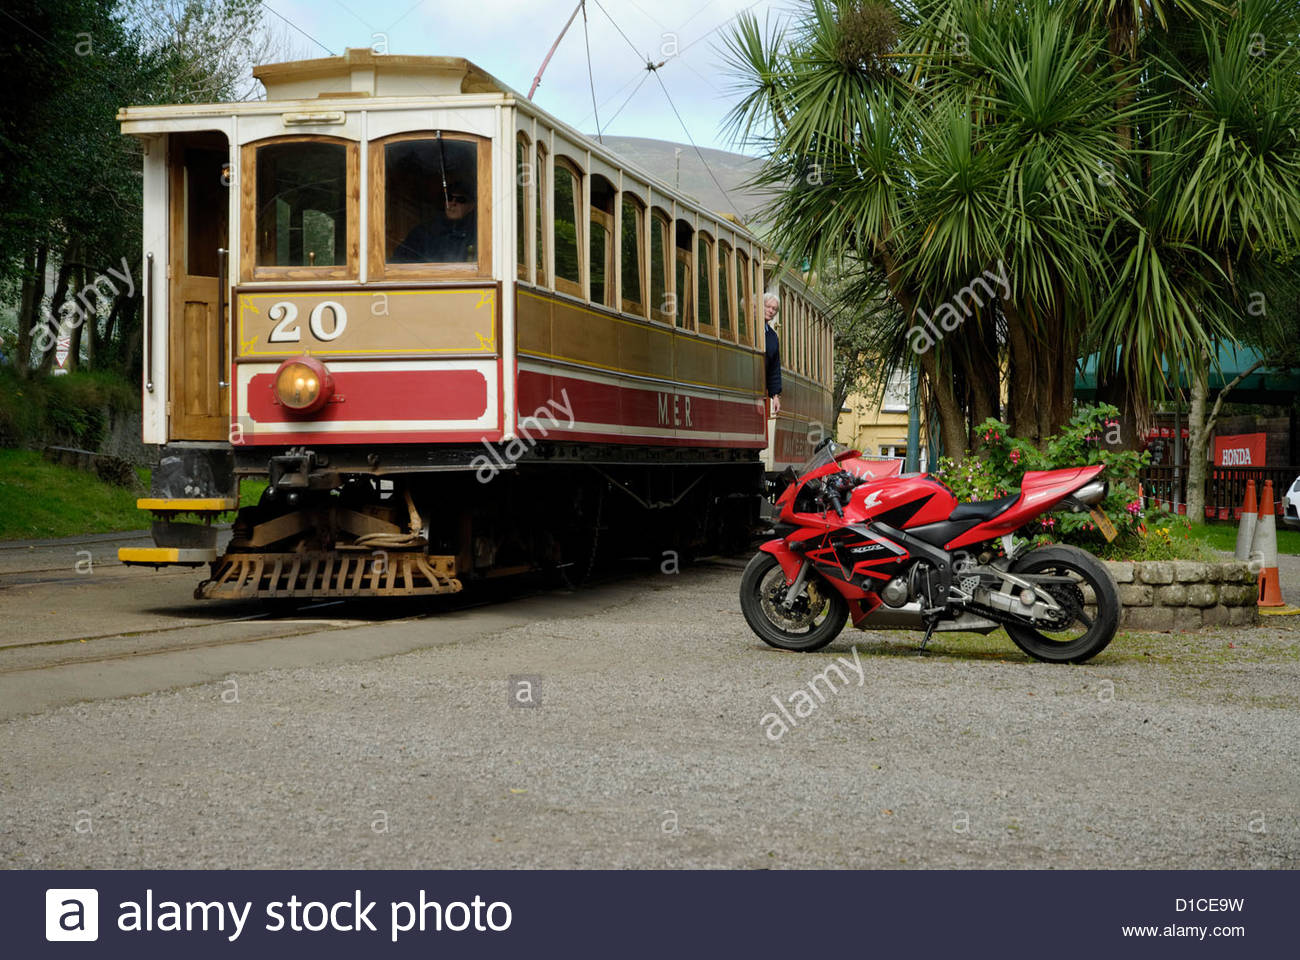 train of the Manx Electric Railway and a sports motorcycle in Laxey on the Isle of Man - Stock Image